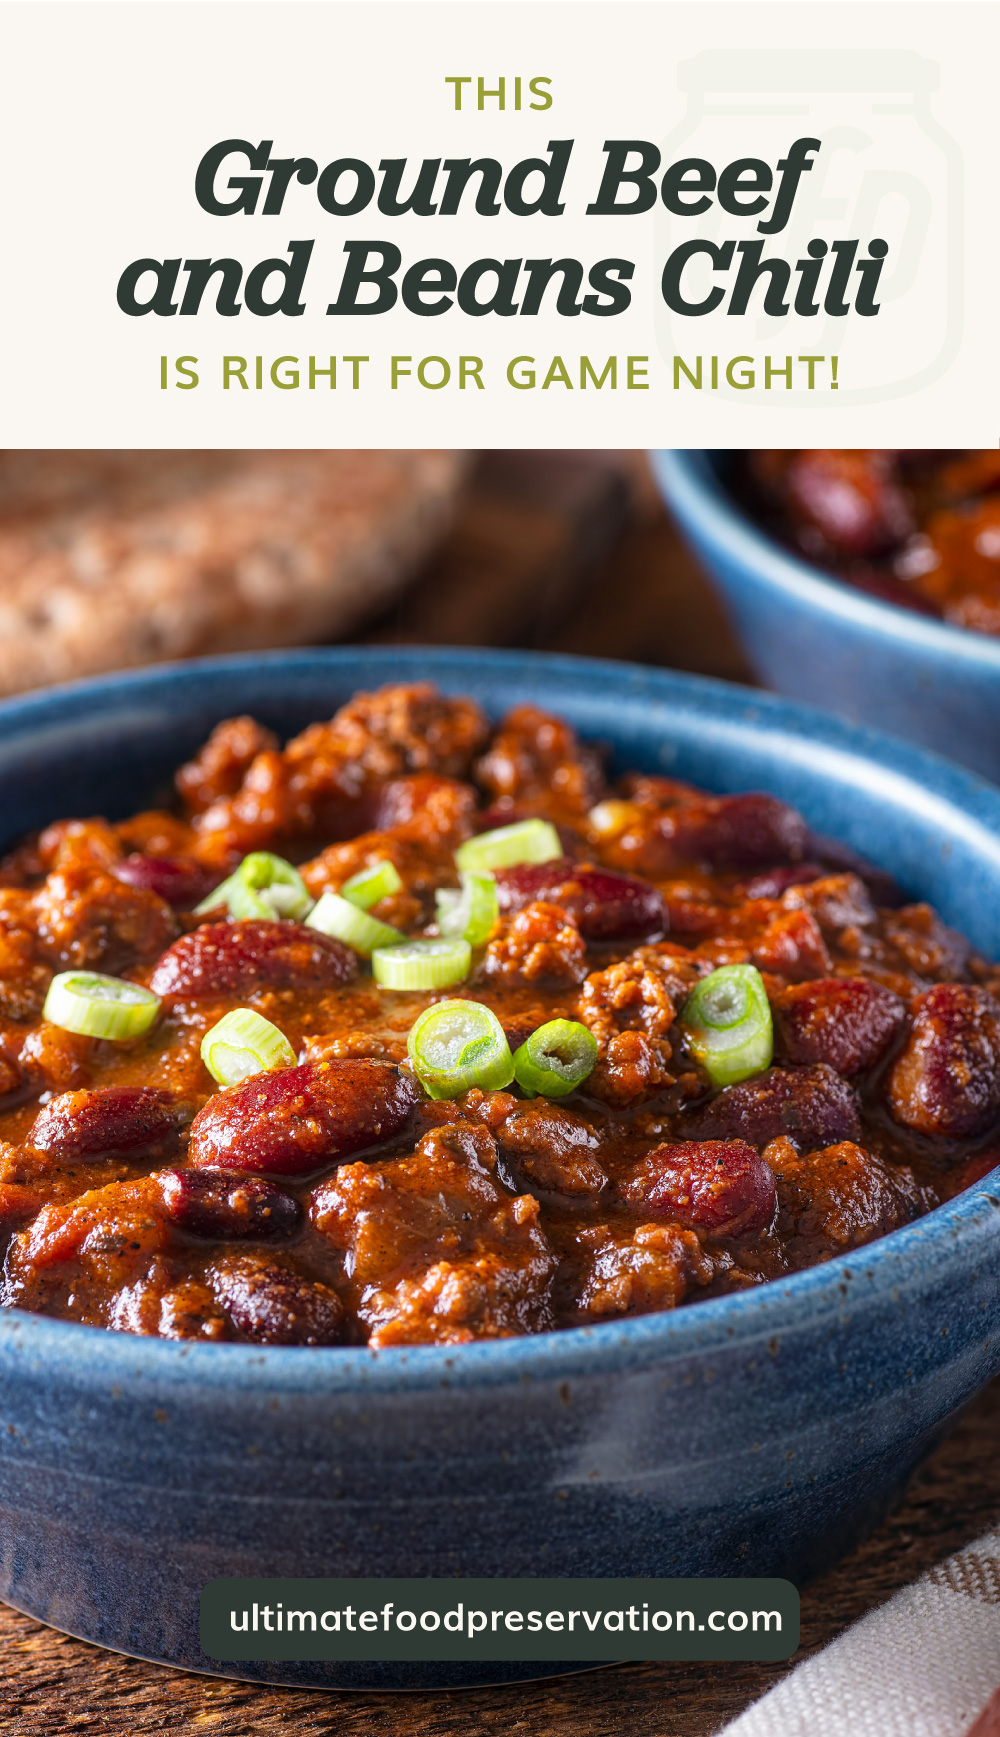 """Text area which says """"This Ground Beef and Beans Chili Is Right For Game Night!"""" next to a close-up view of a ground beef and beans chili dish in a bowl followed by another text area which says ultimatefoodpreservation.com"""